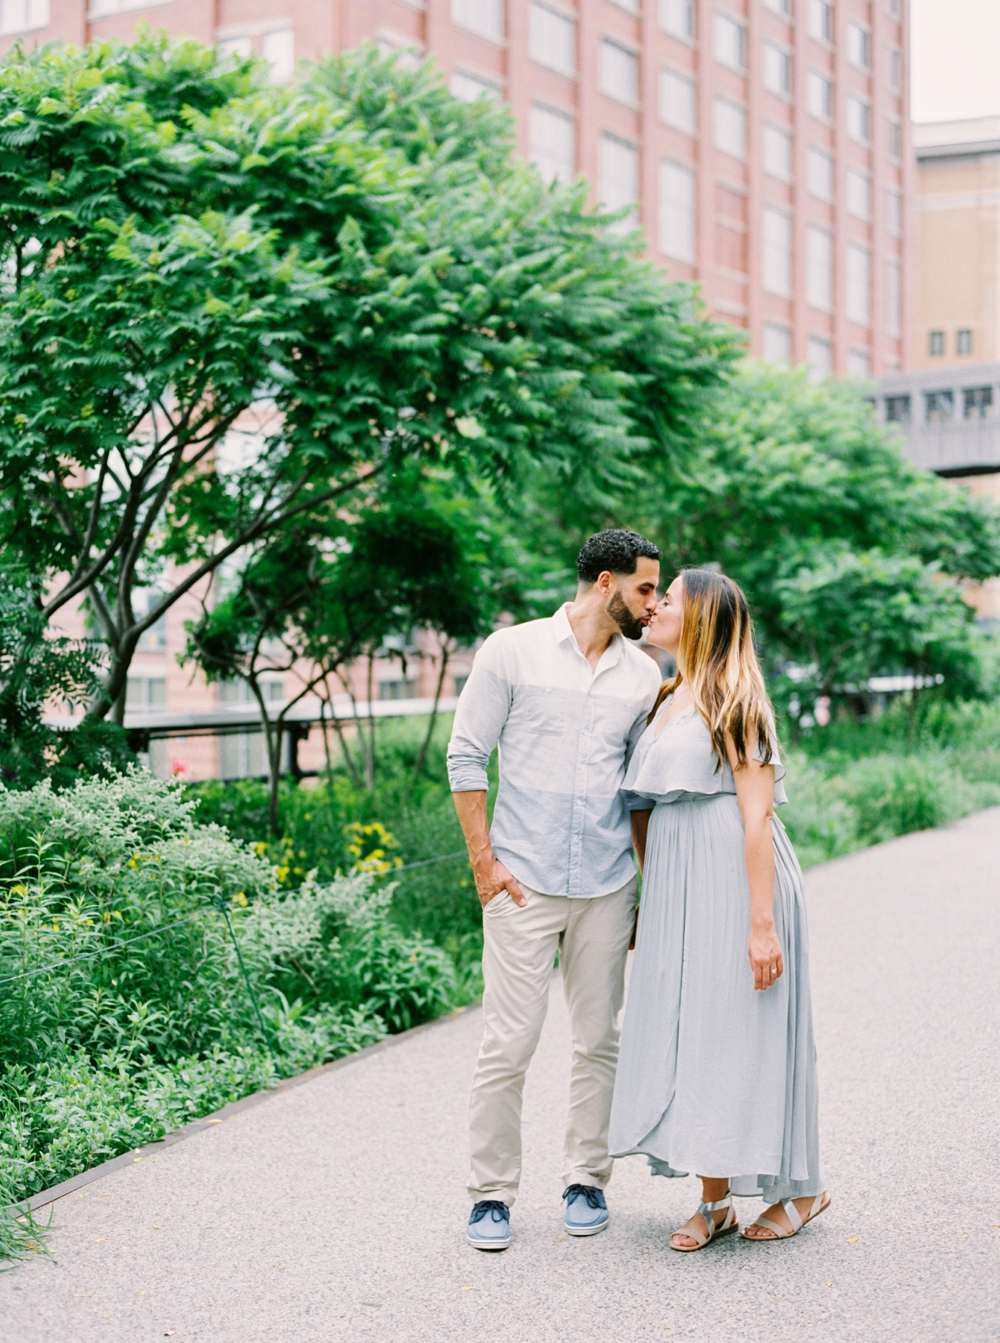 New York City High Line | Engagement Photography | Engagement Session | Amal & Muhamed | NYC Engagement Photos | Calgary Wedding Photographers